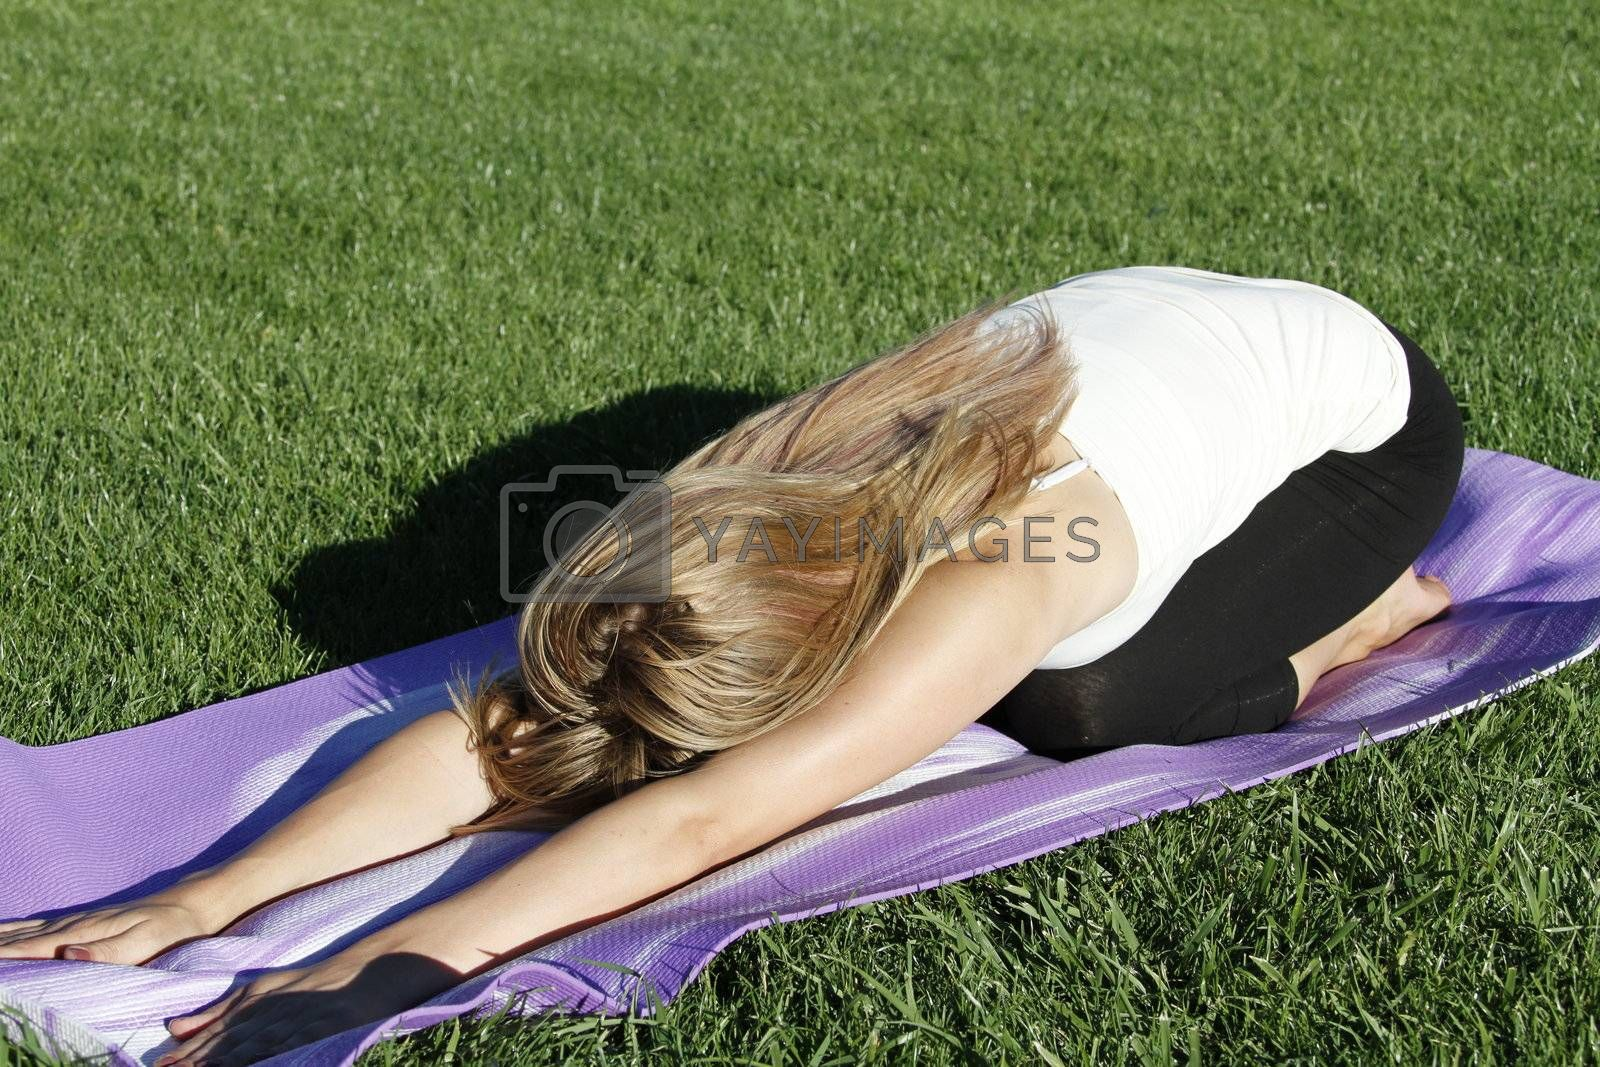 Yoga in the park by aruns911